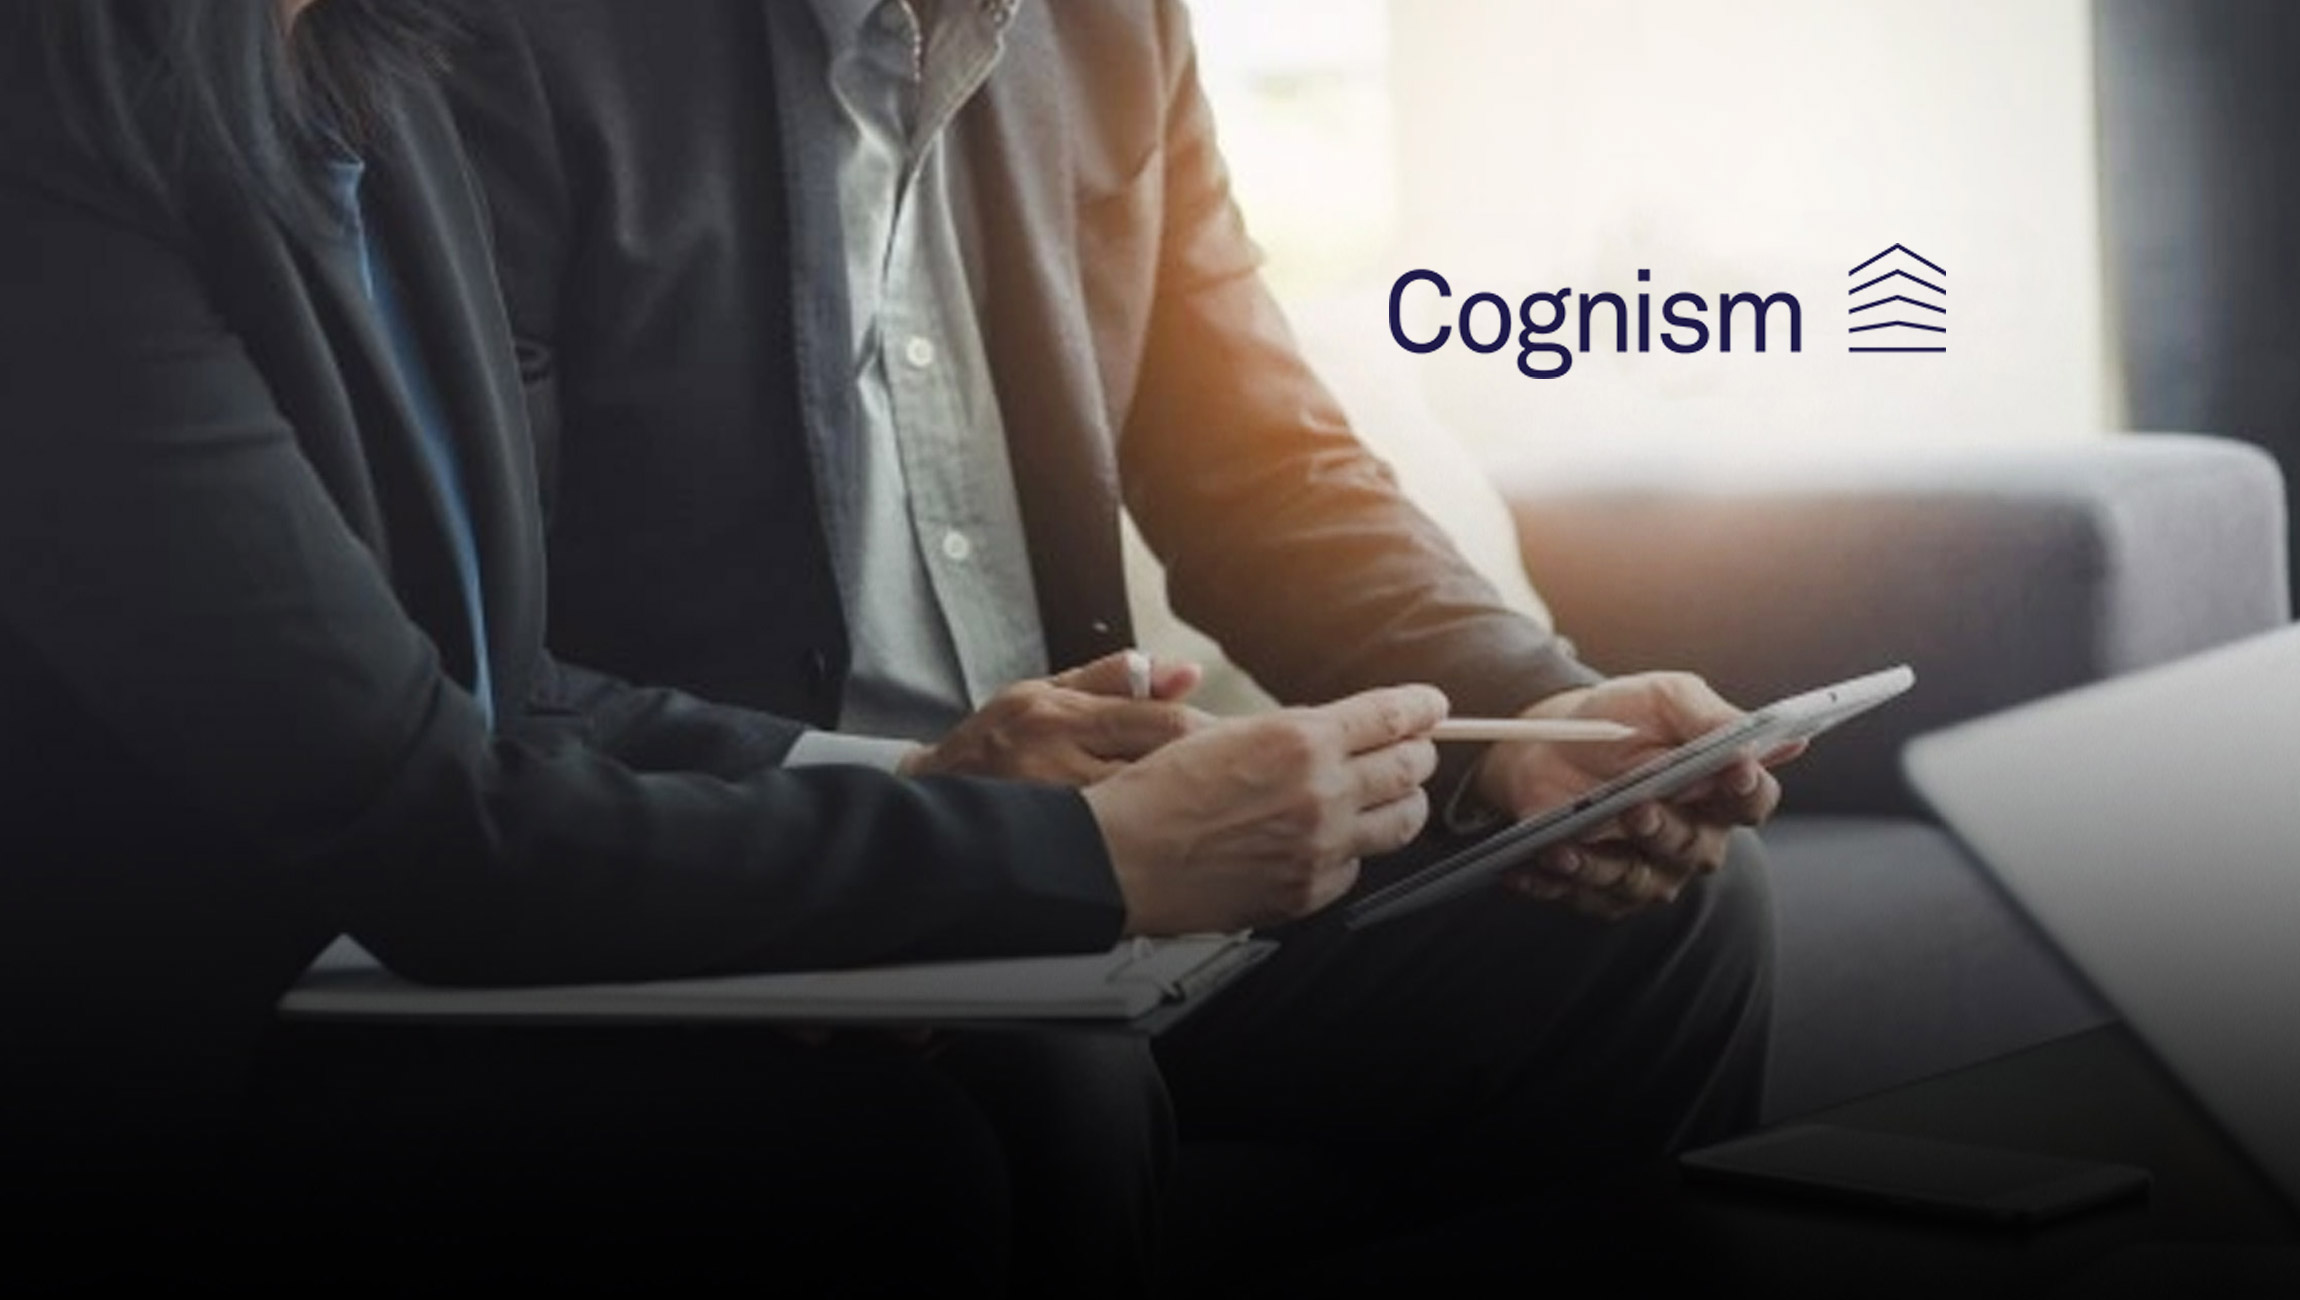 Sales Intelligence Provider Cognism Announces New Addition to Board